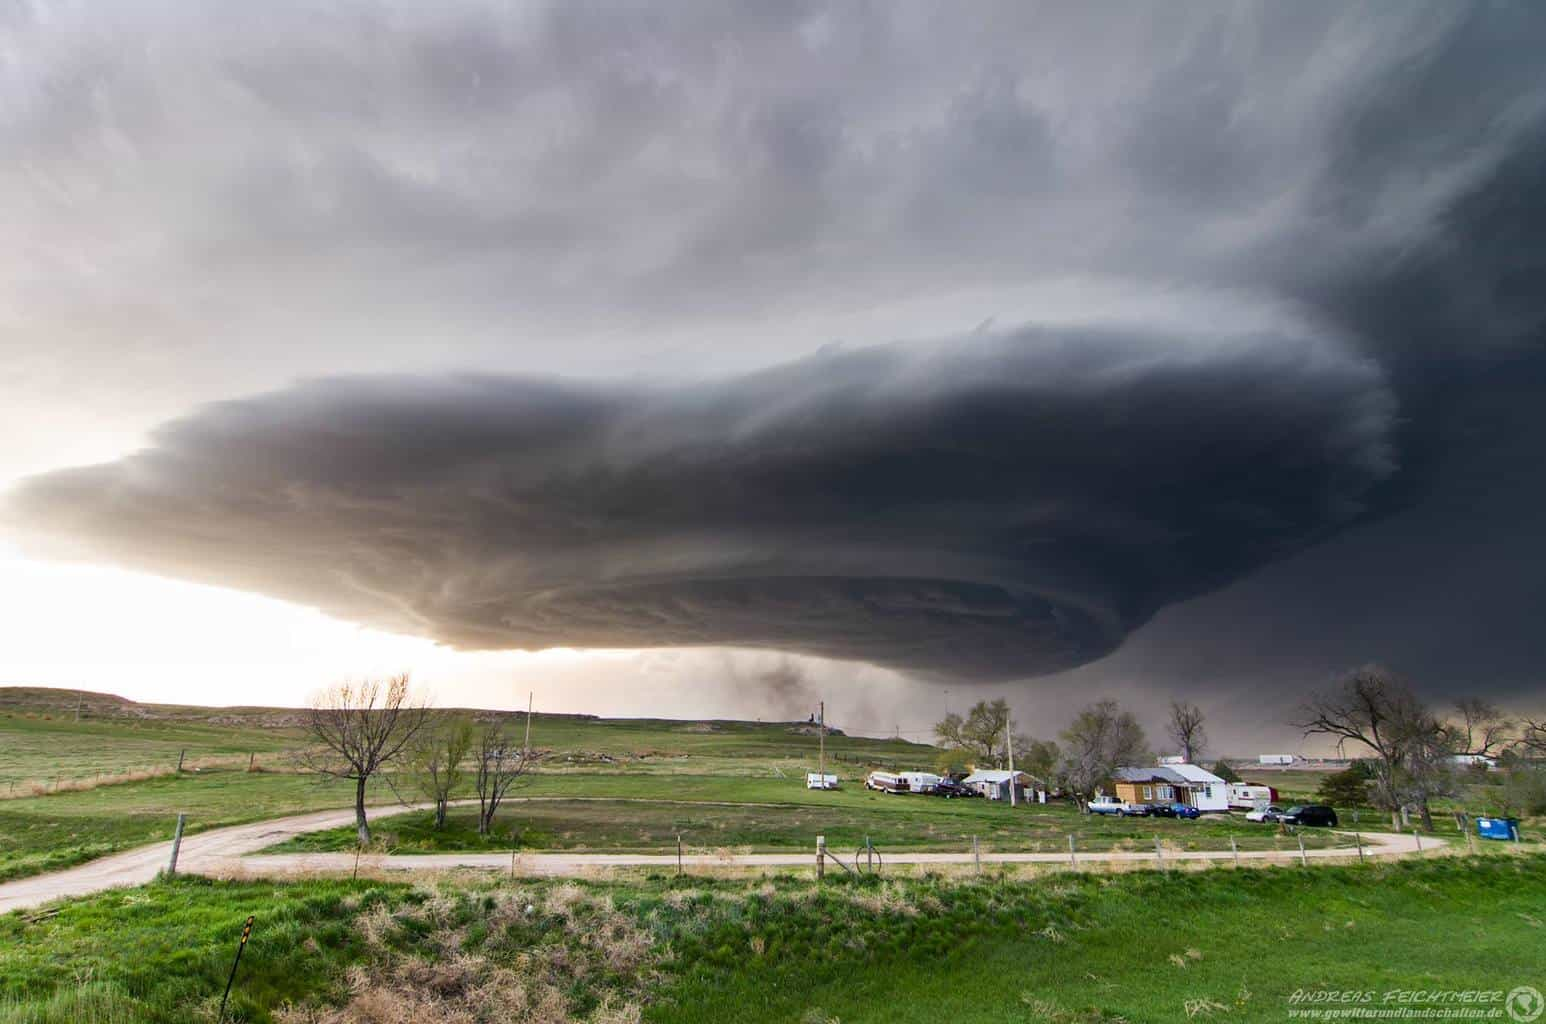 May 19th 2014 LP-Supercell with nice Mothership near Sidney, Nebraska.